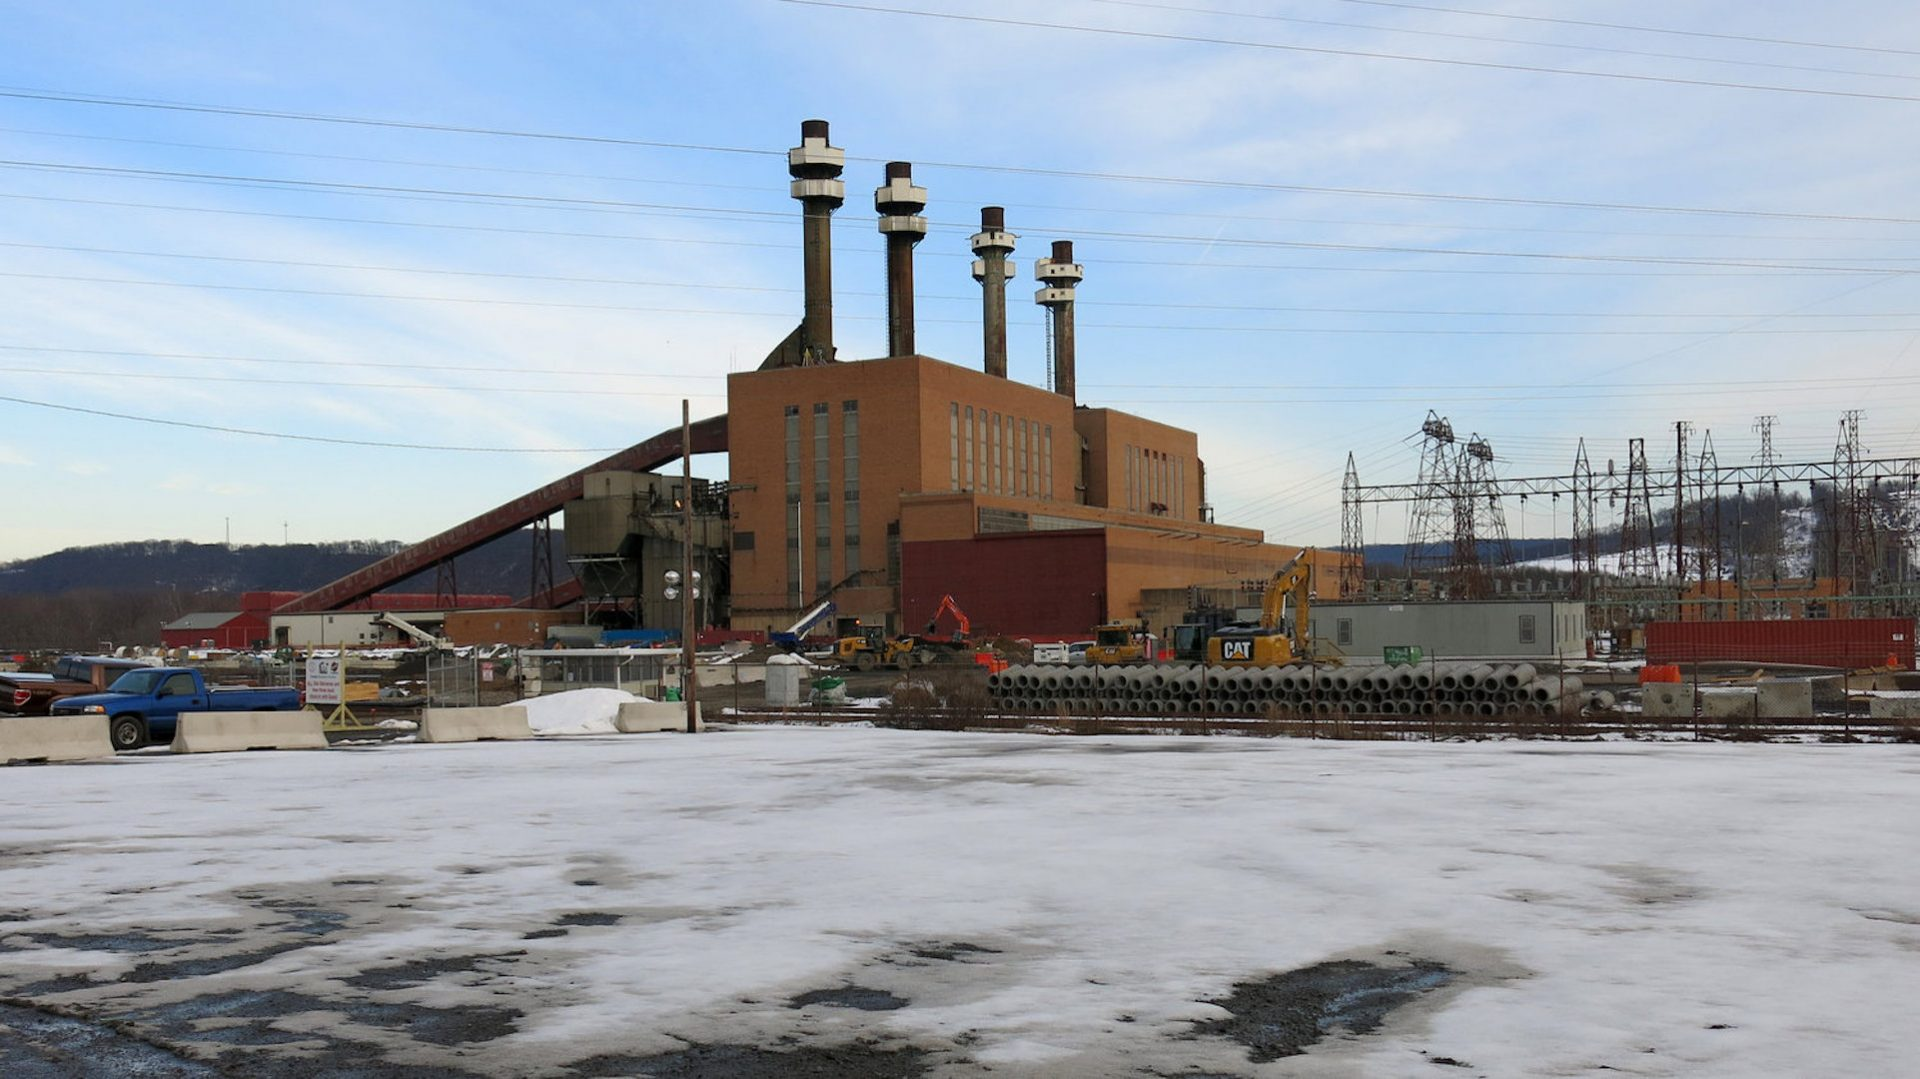 The coal plant in Shamokin Dam, Pa., is a local landmark that delivered electricity to this region for more than six decades. It closed in 2014. Next to it, a brand new natural gas power plant is under construction. The Sunbury Pipeline will feed Marcellus Shale gas into that plant.